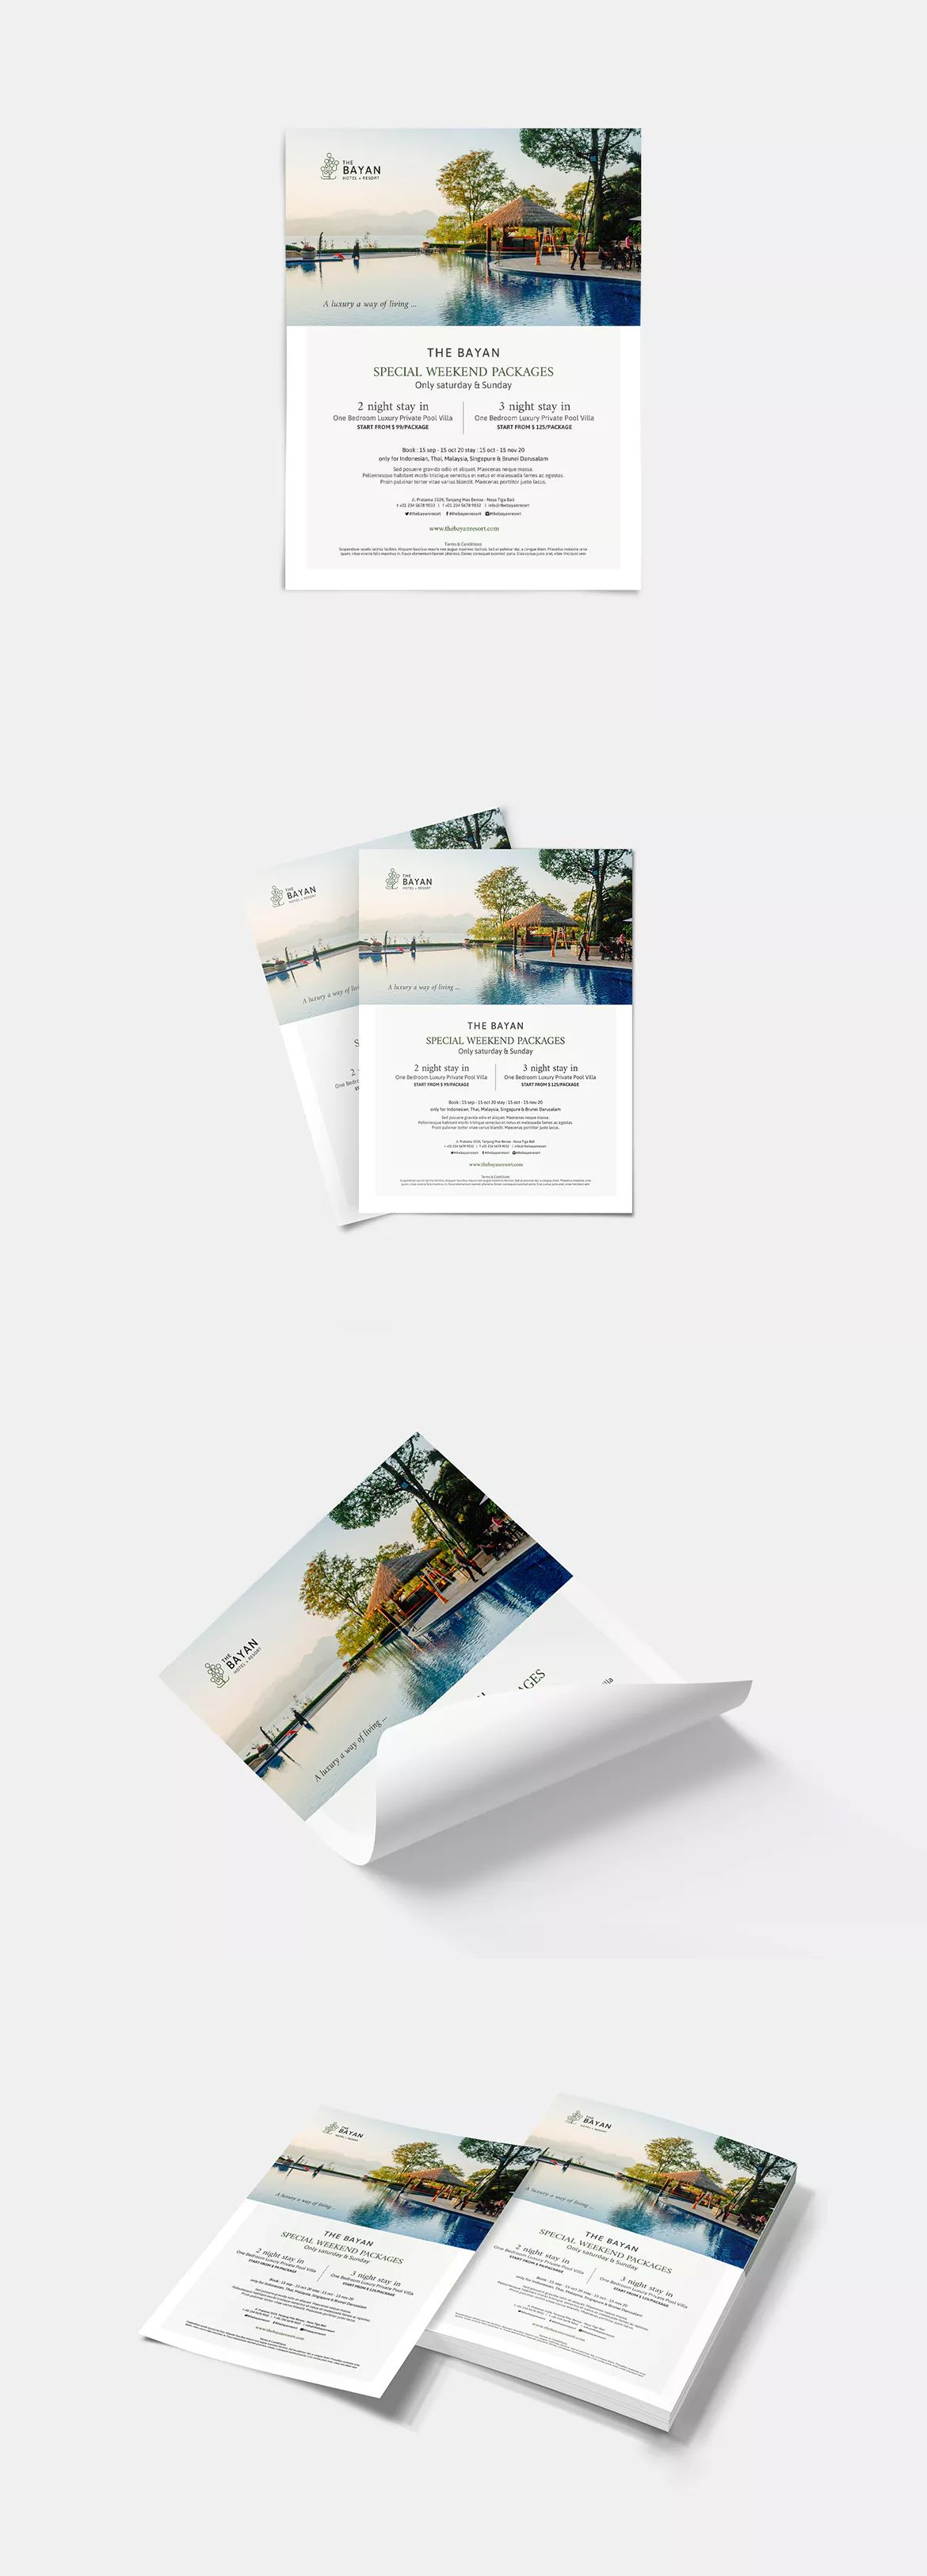 hotel package flyer by silukeight on packages cv format for engineers free download network engineer resume career objective administrative assistant